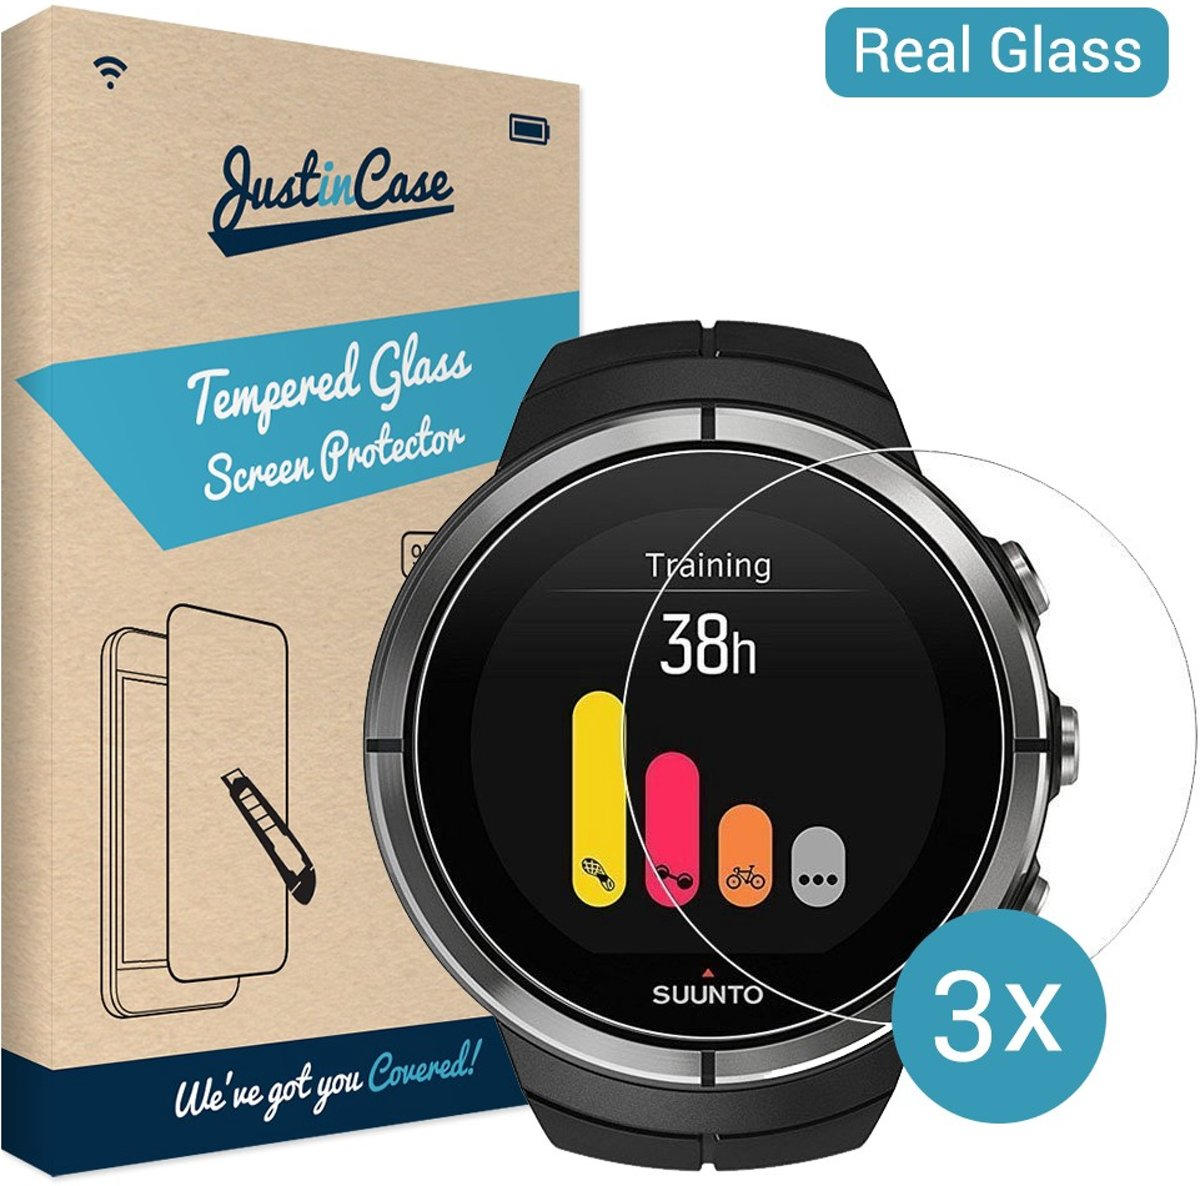 Just in Case Tempered Glass Suunto Spartan Ultra - 3 pack kopen